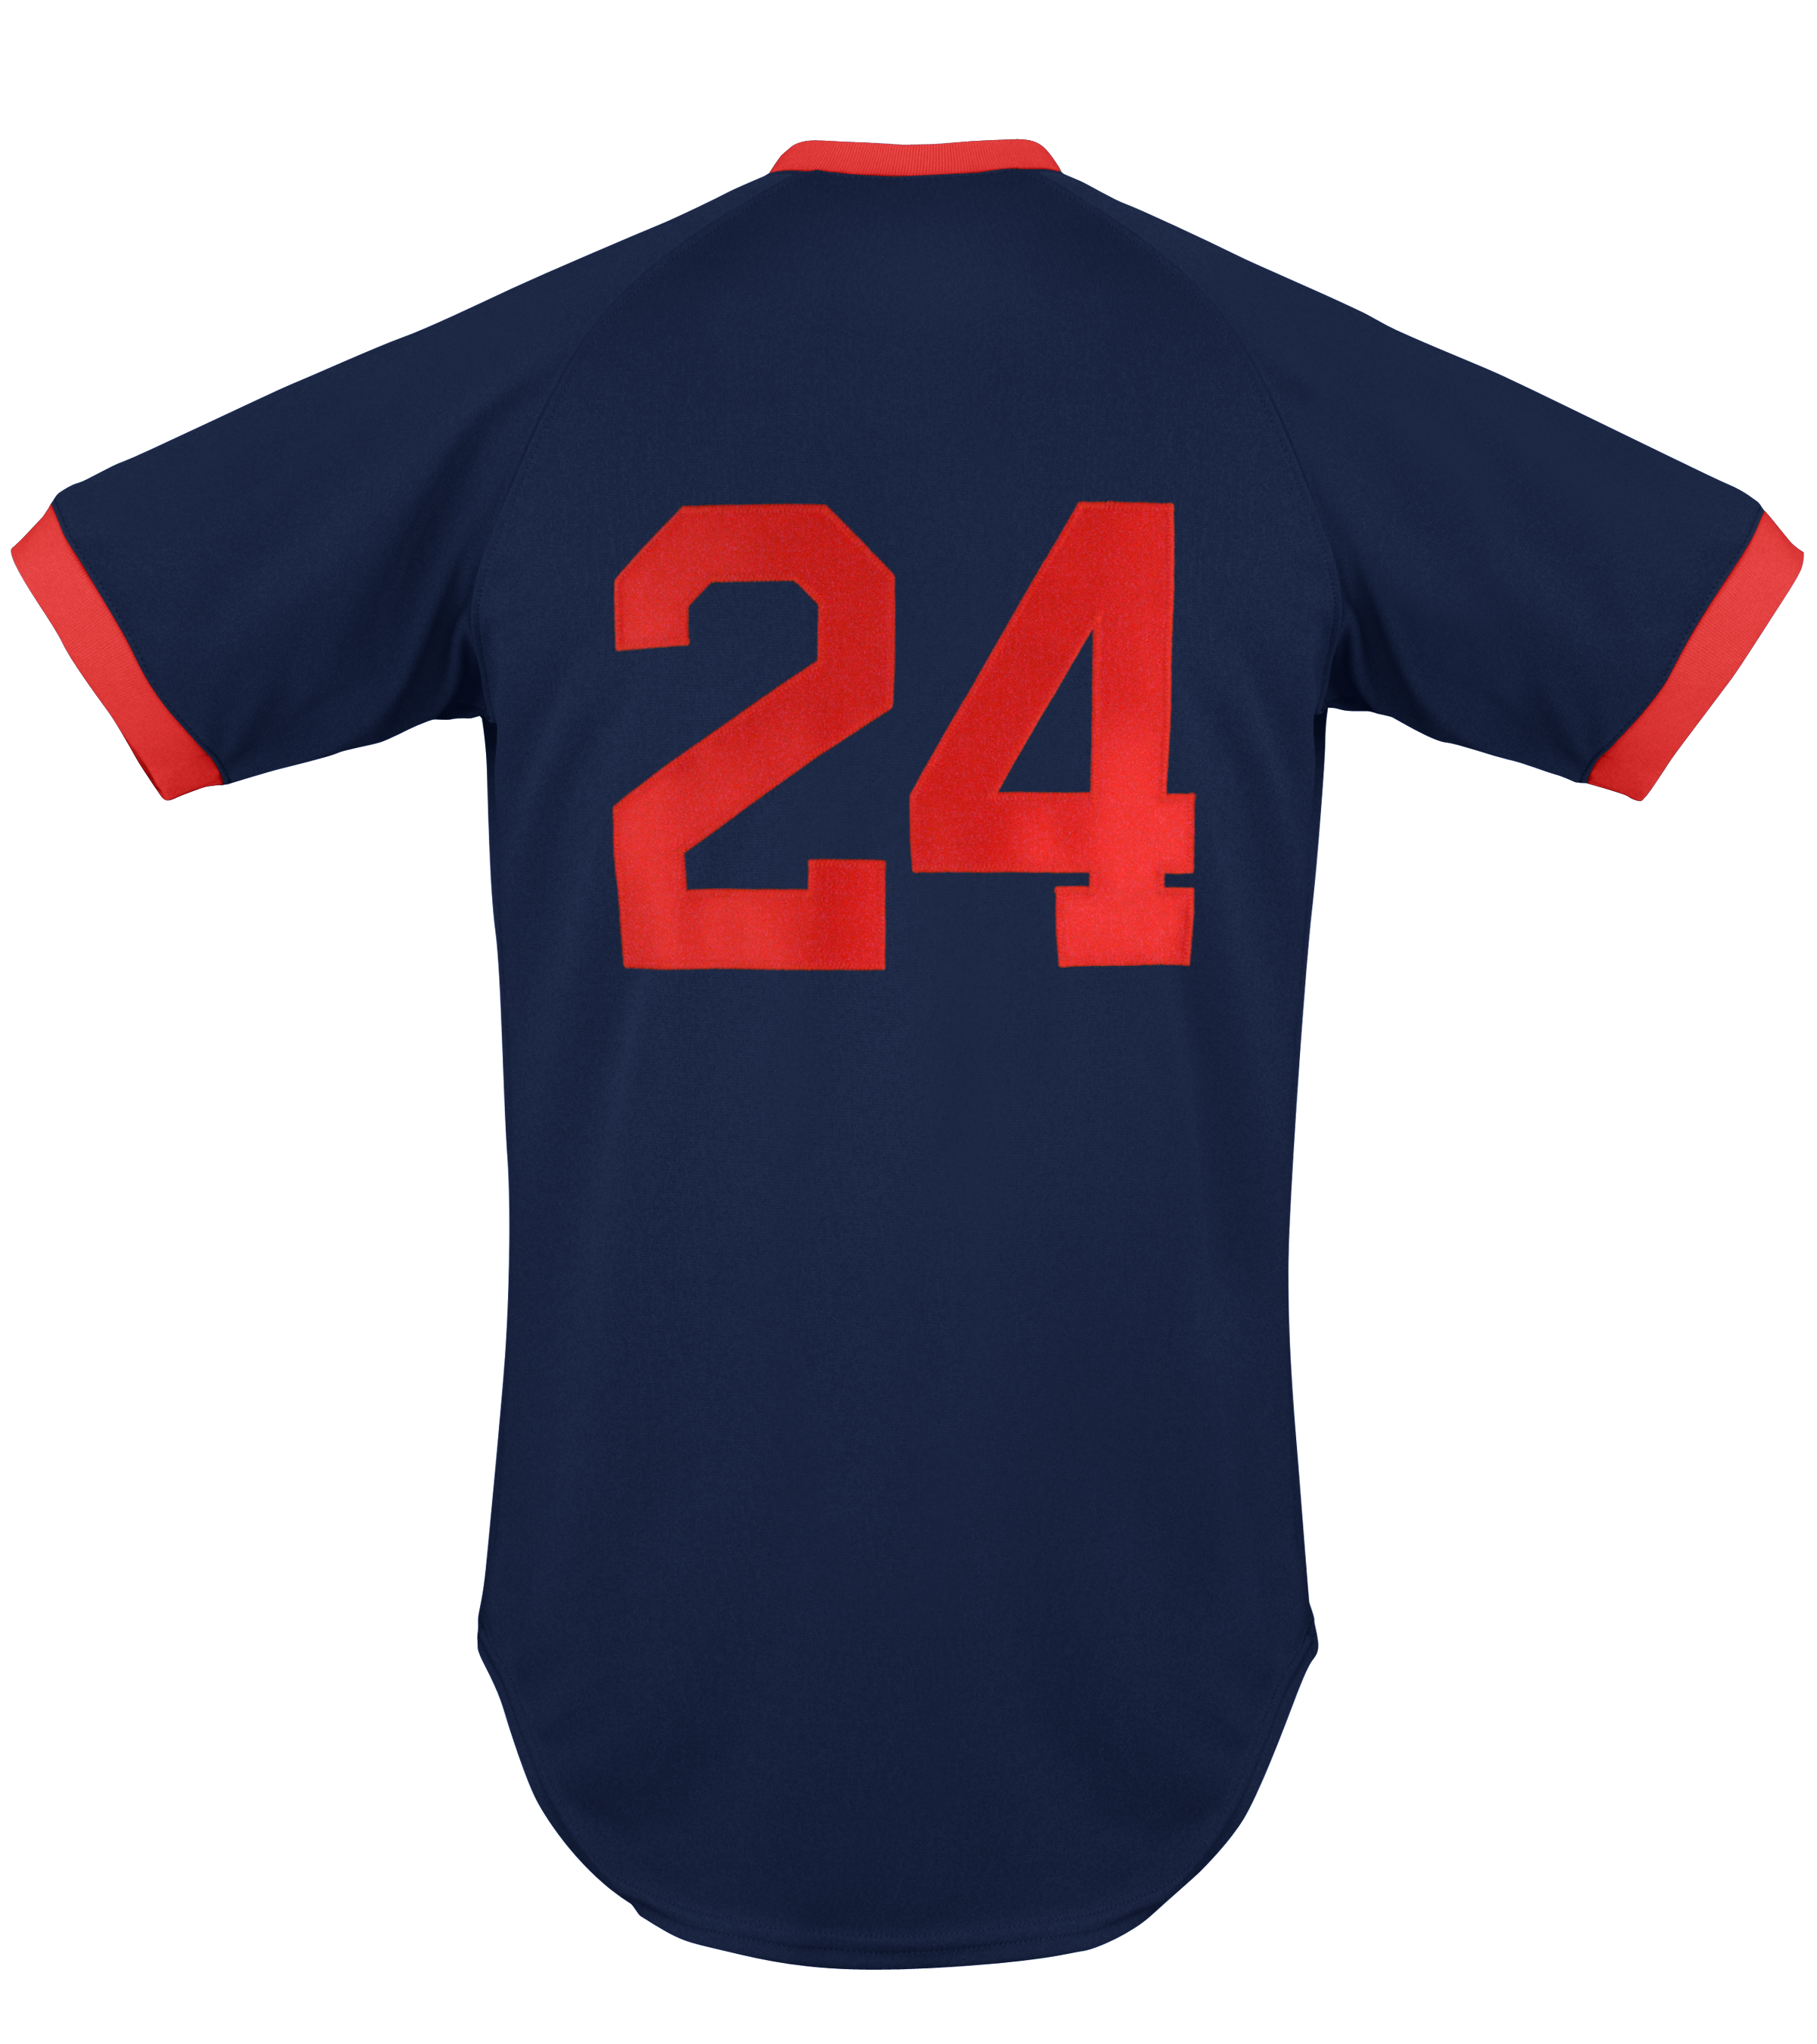 c9f3b03b8 Vintage Baseball Jersey. Rollover to Zoom. View Larger. Vintage ...